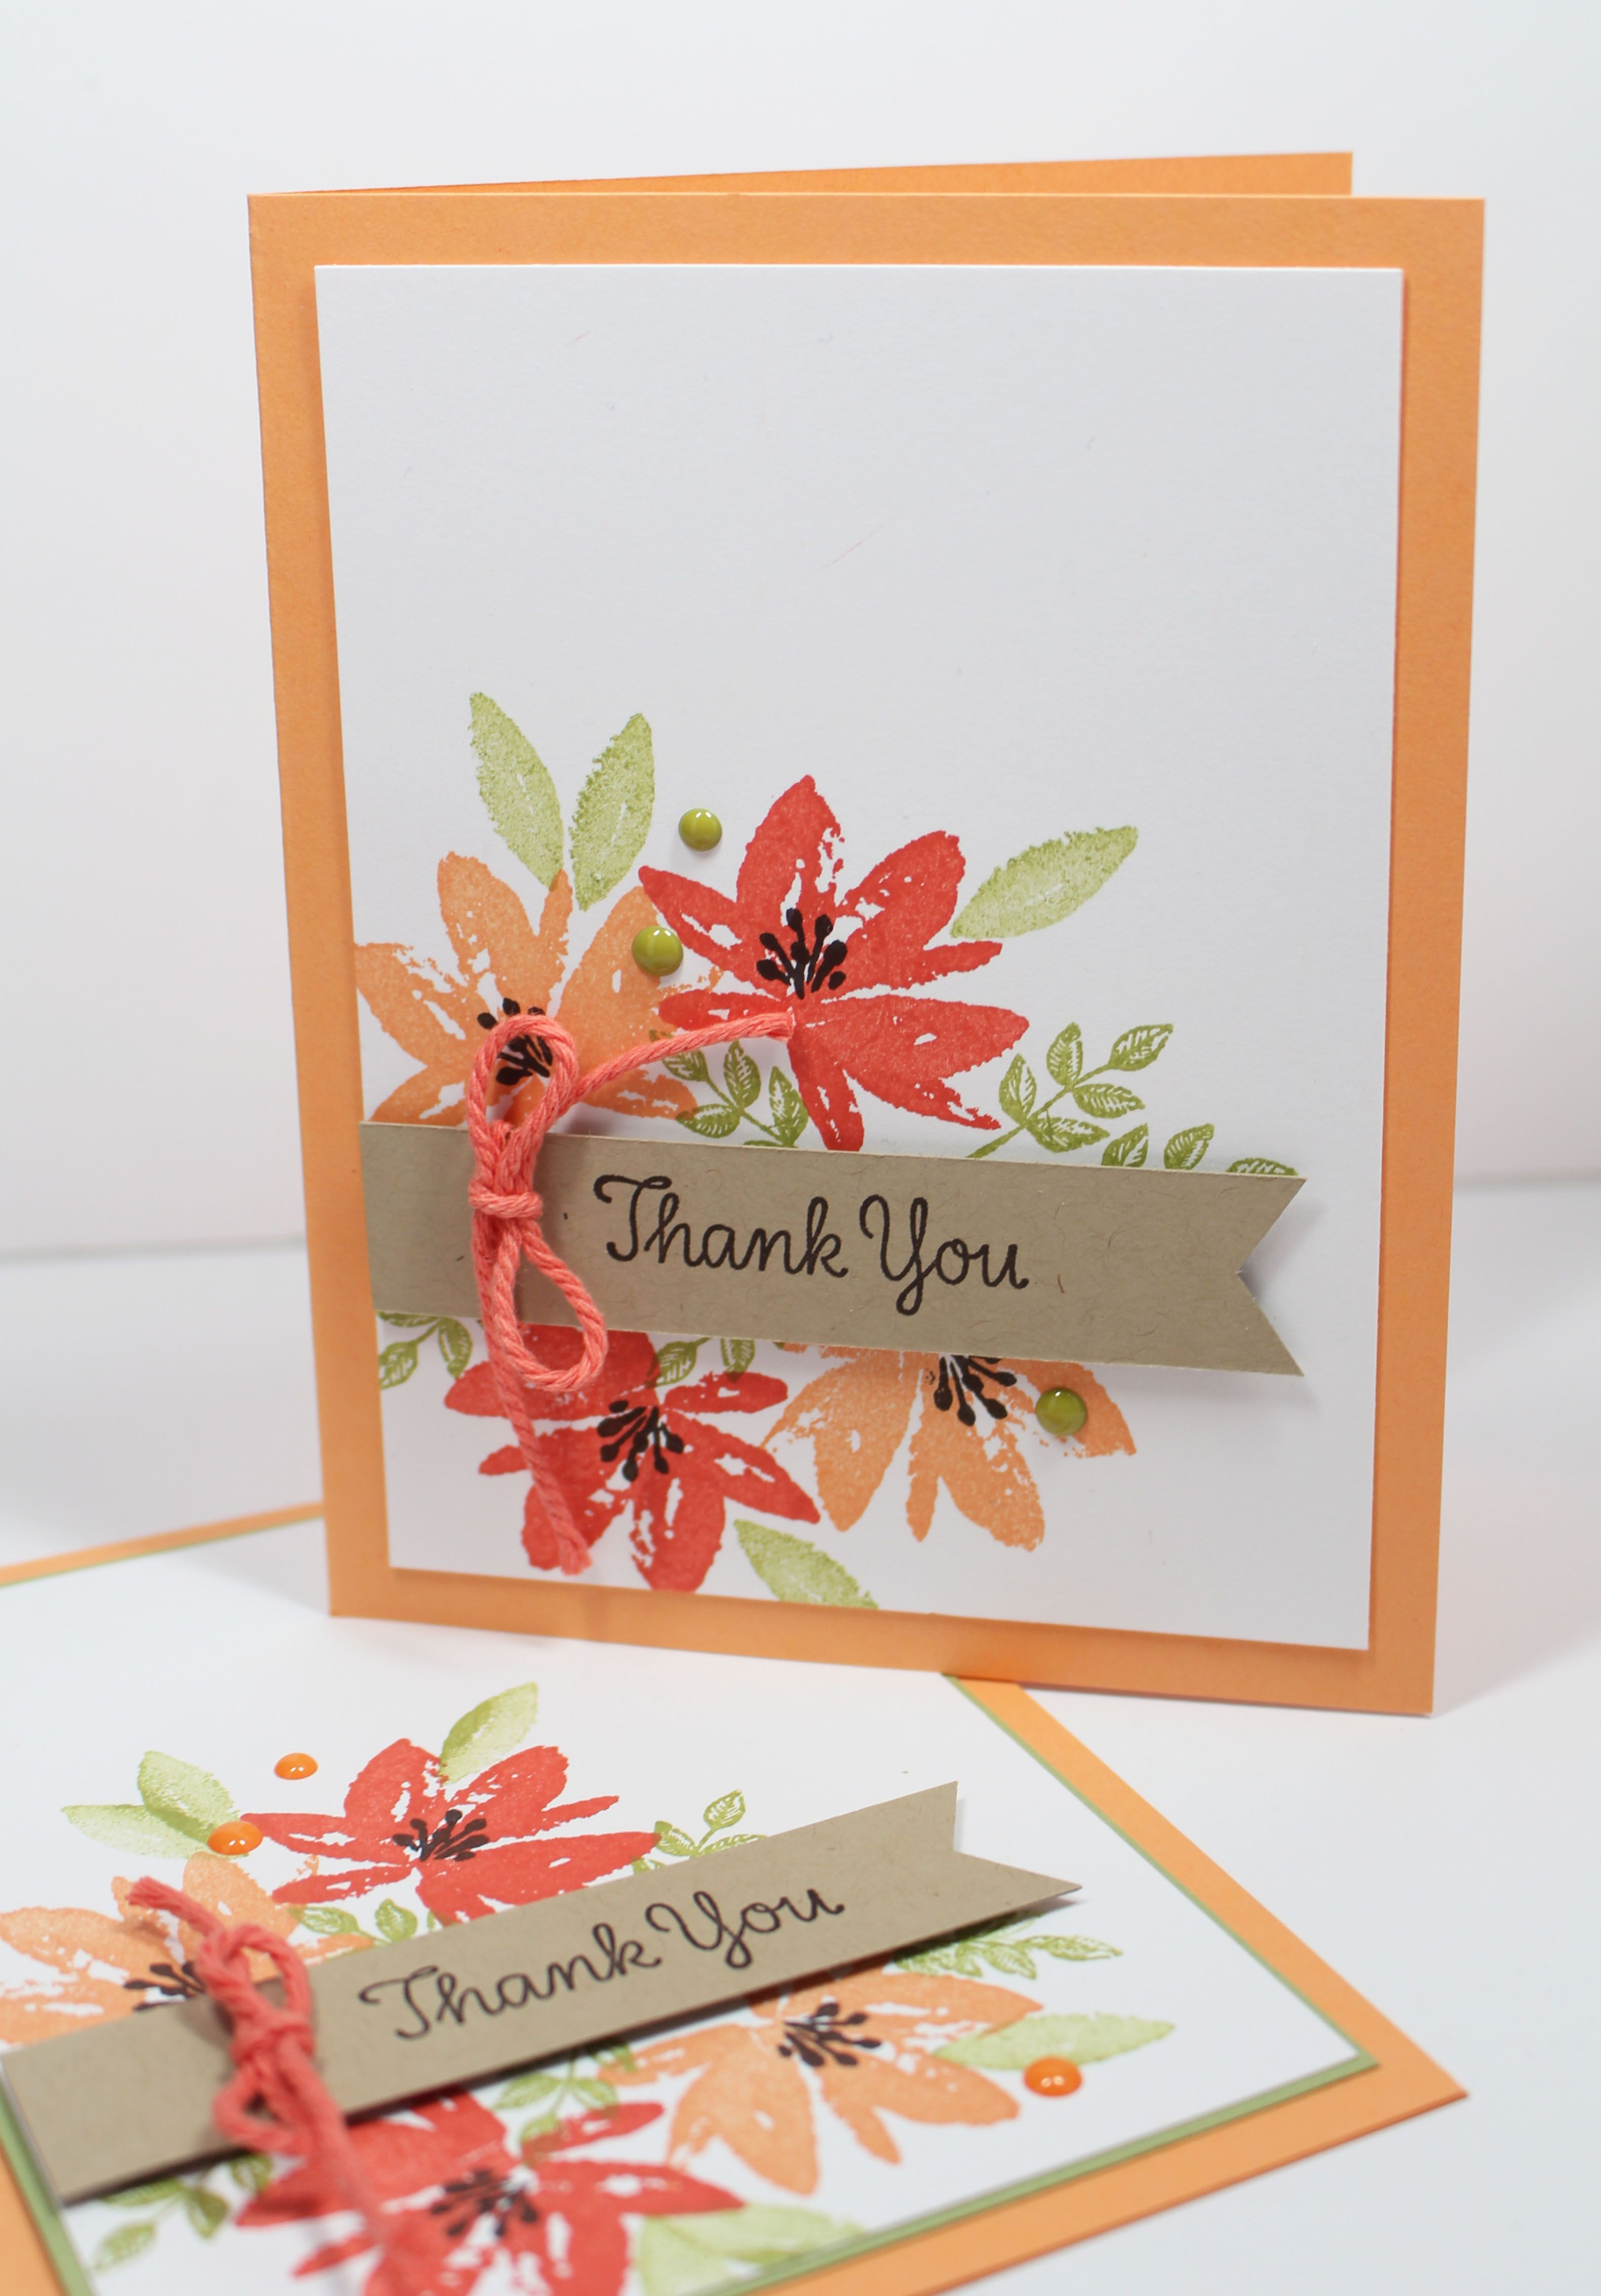 How To Make A Easy Thank You Card Video Tutorial With Stampin Up